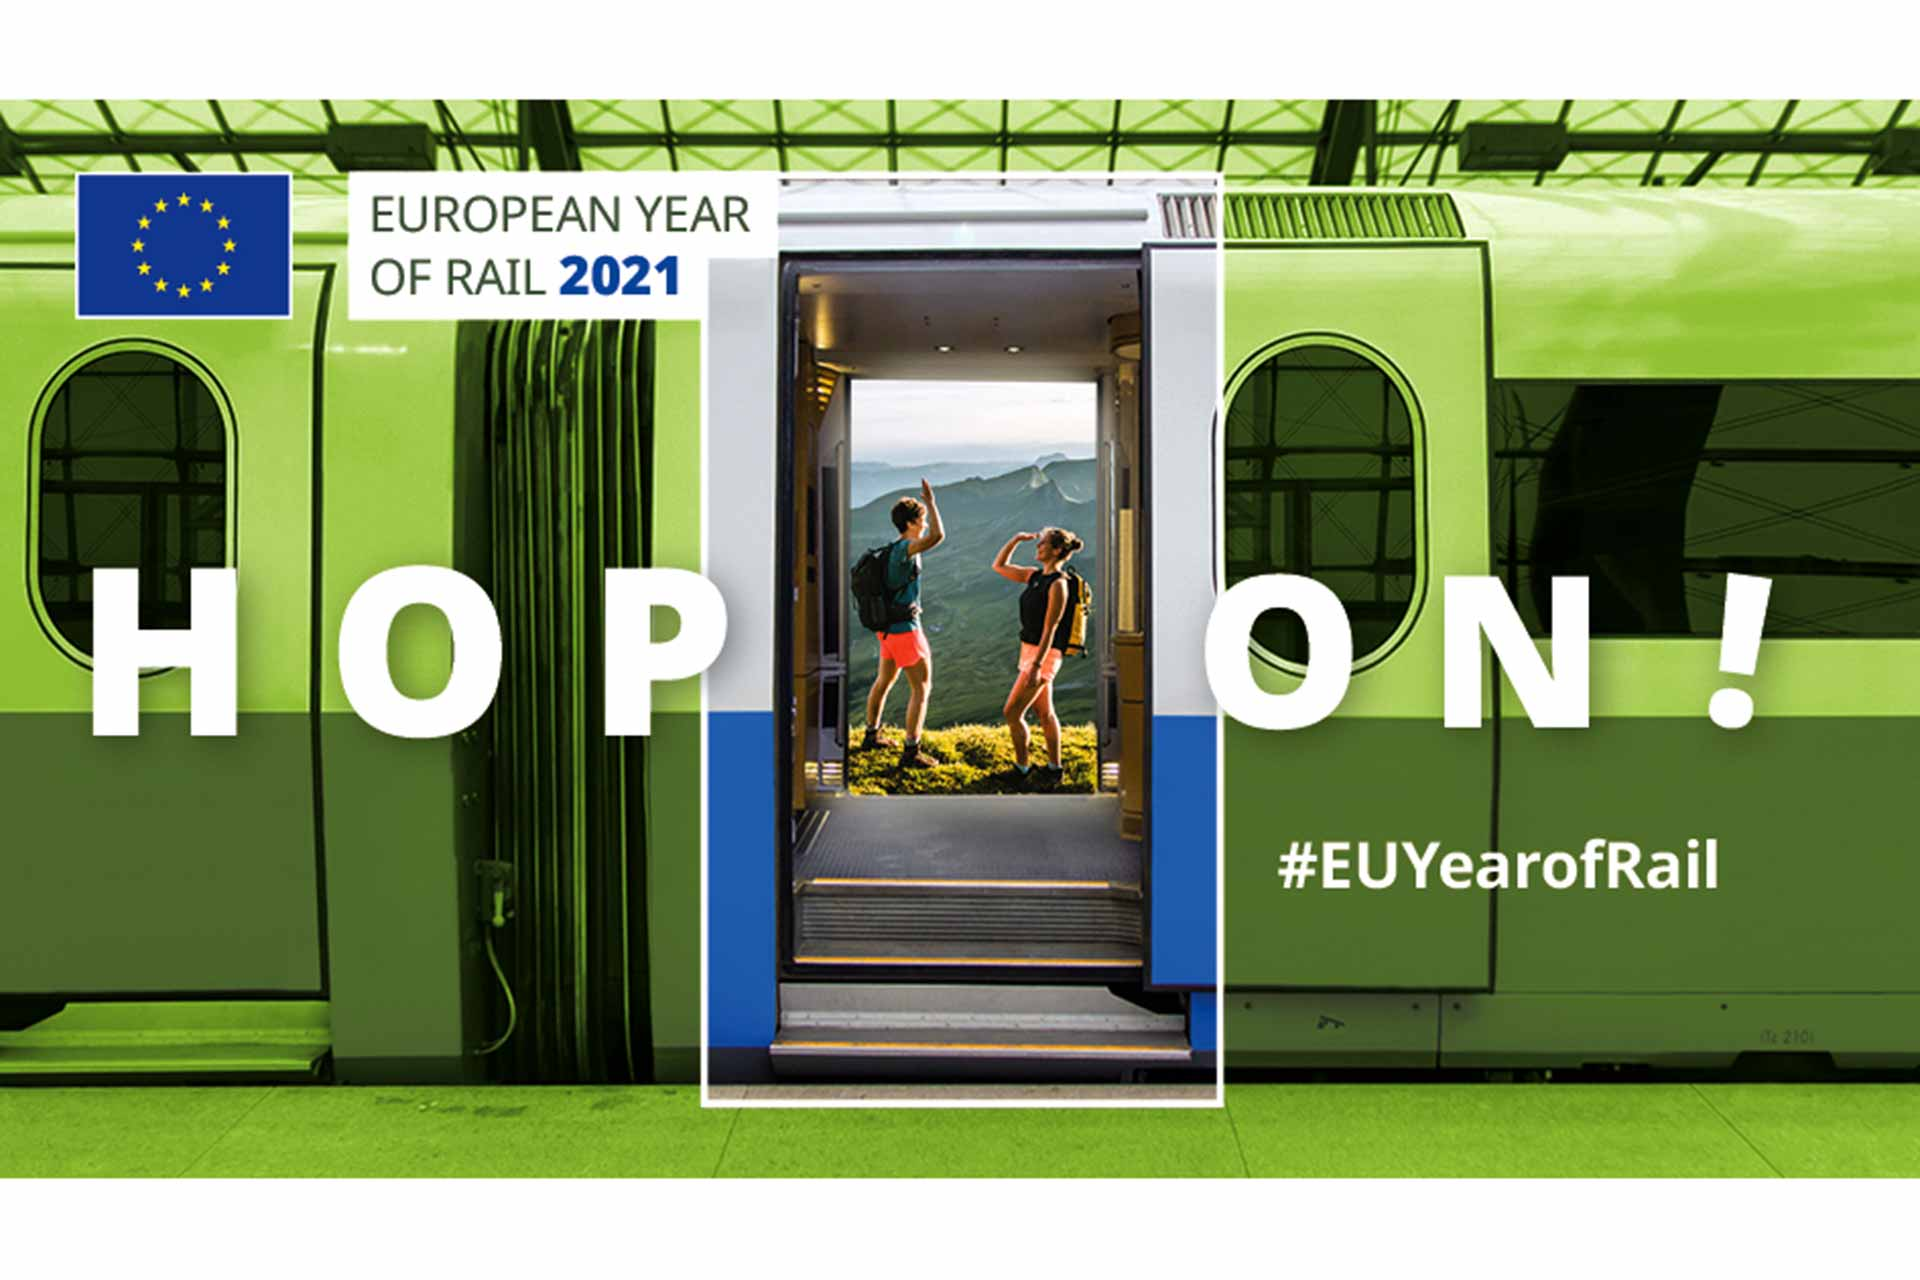 European Year of Rail 2021 #EUYearofRail